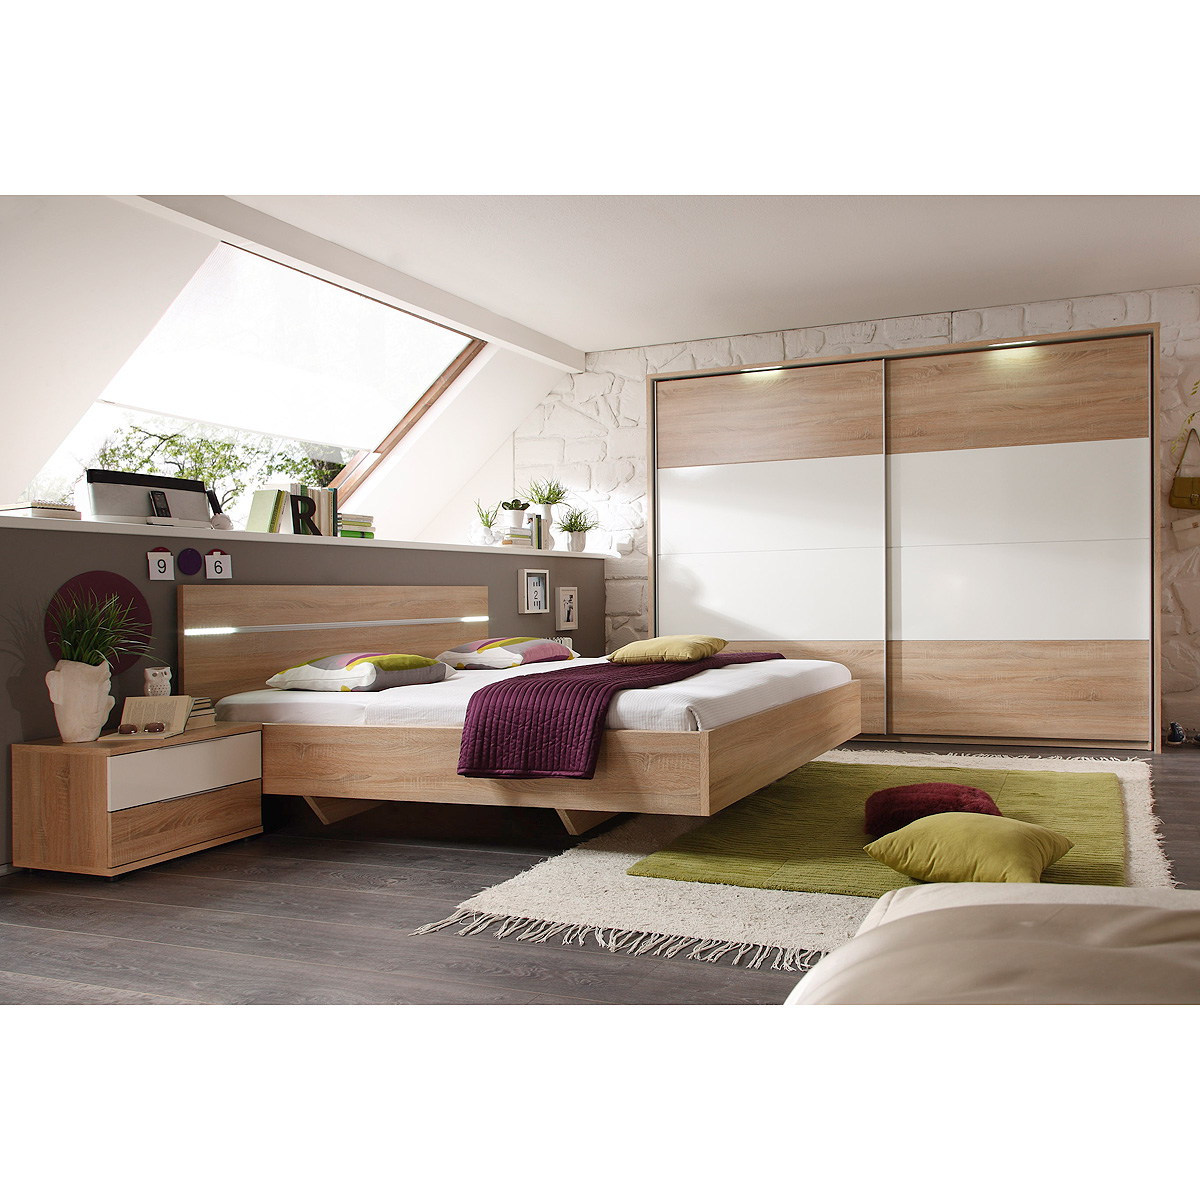 schlafzimmerset pluto bett schrank nako sonoma eiche wei glanz inkl led ebay. Black Bedroom Furniture Sets. Home Design Ideas